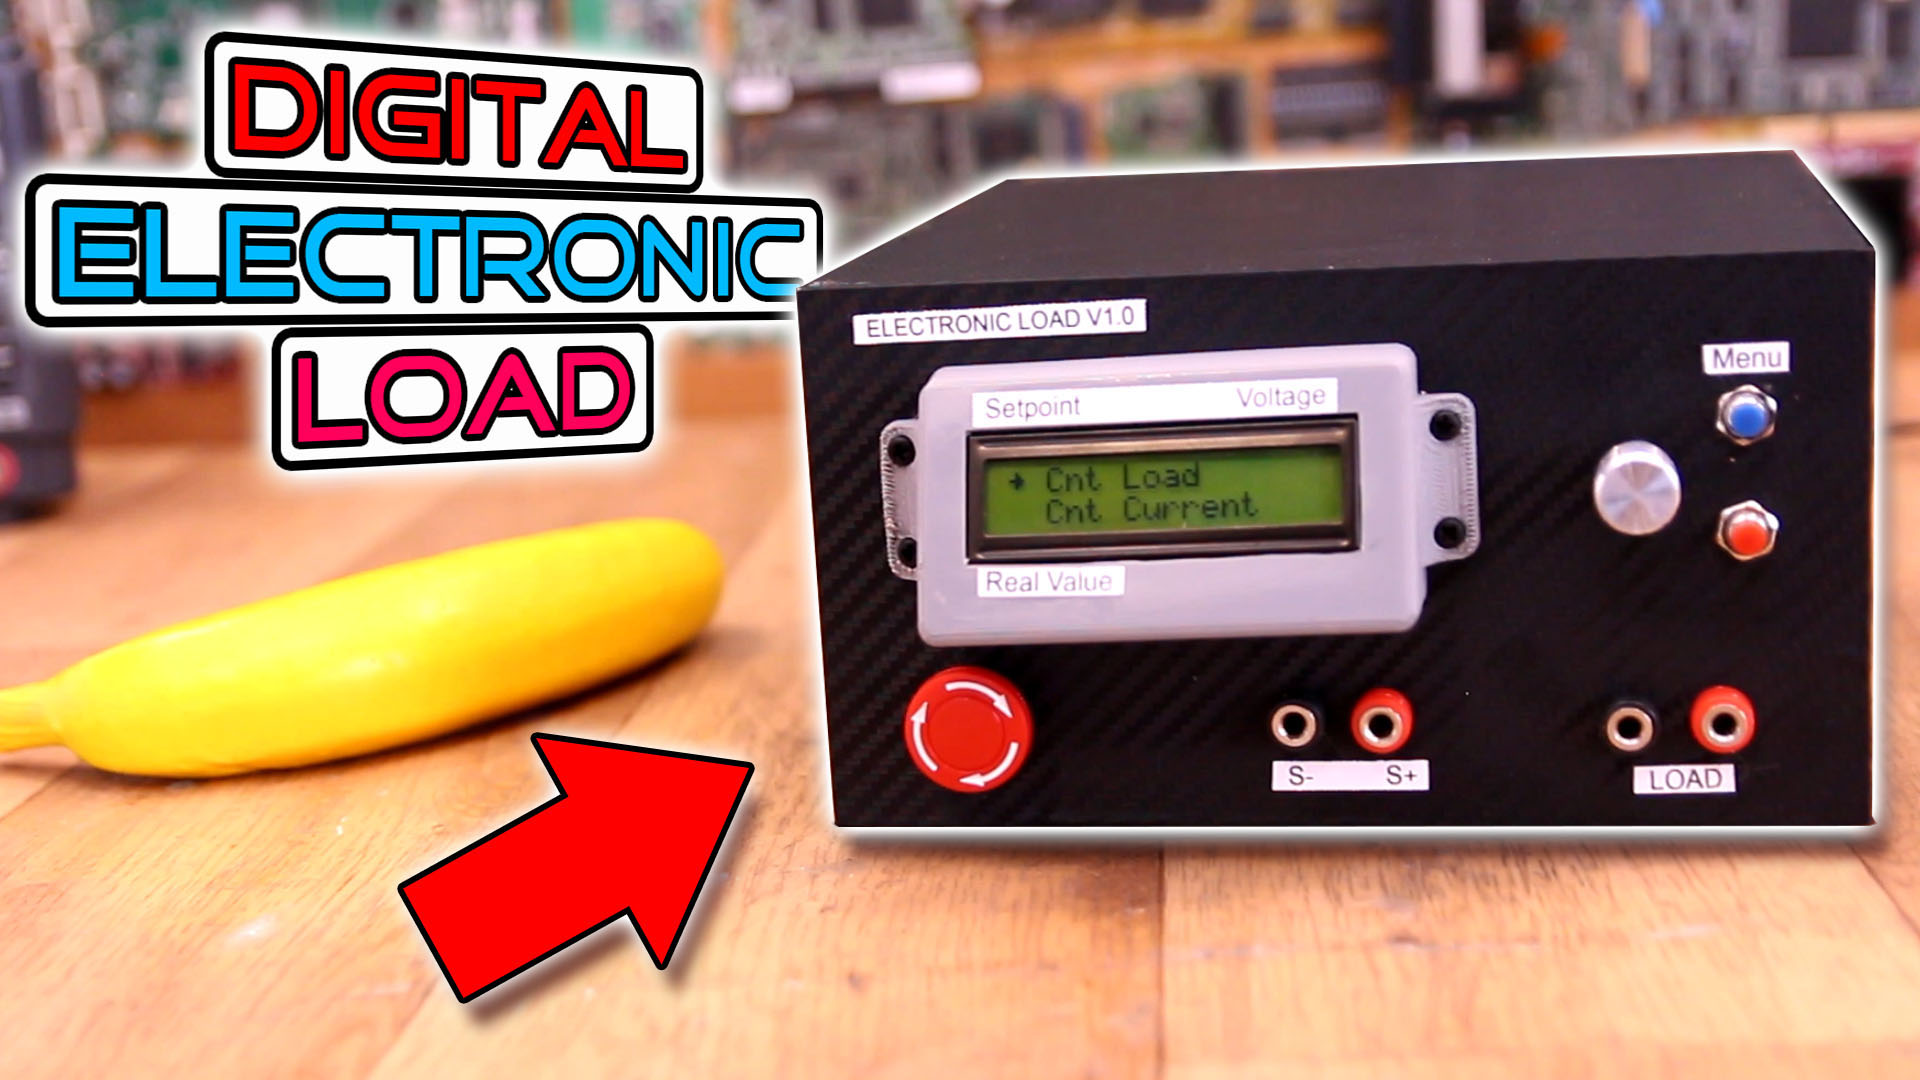 In this tutorial I show you how I've build a homemade electronic load with Arduino, an LCD, rotary encoder for the menu and a power MSOFET for load c